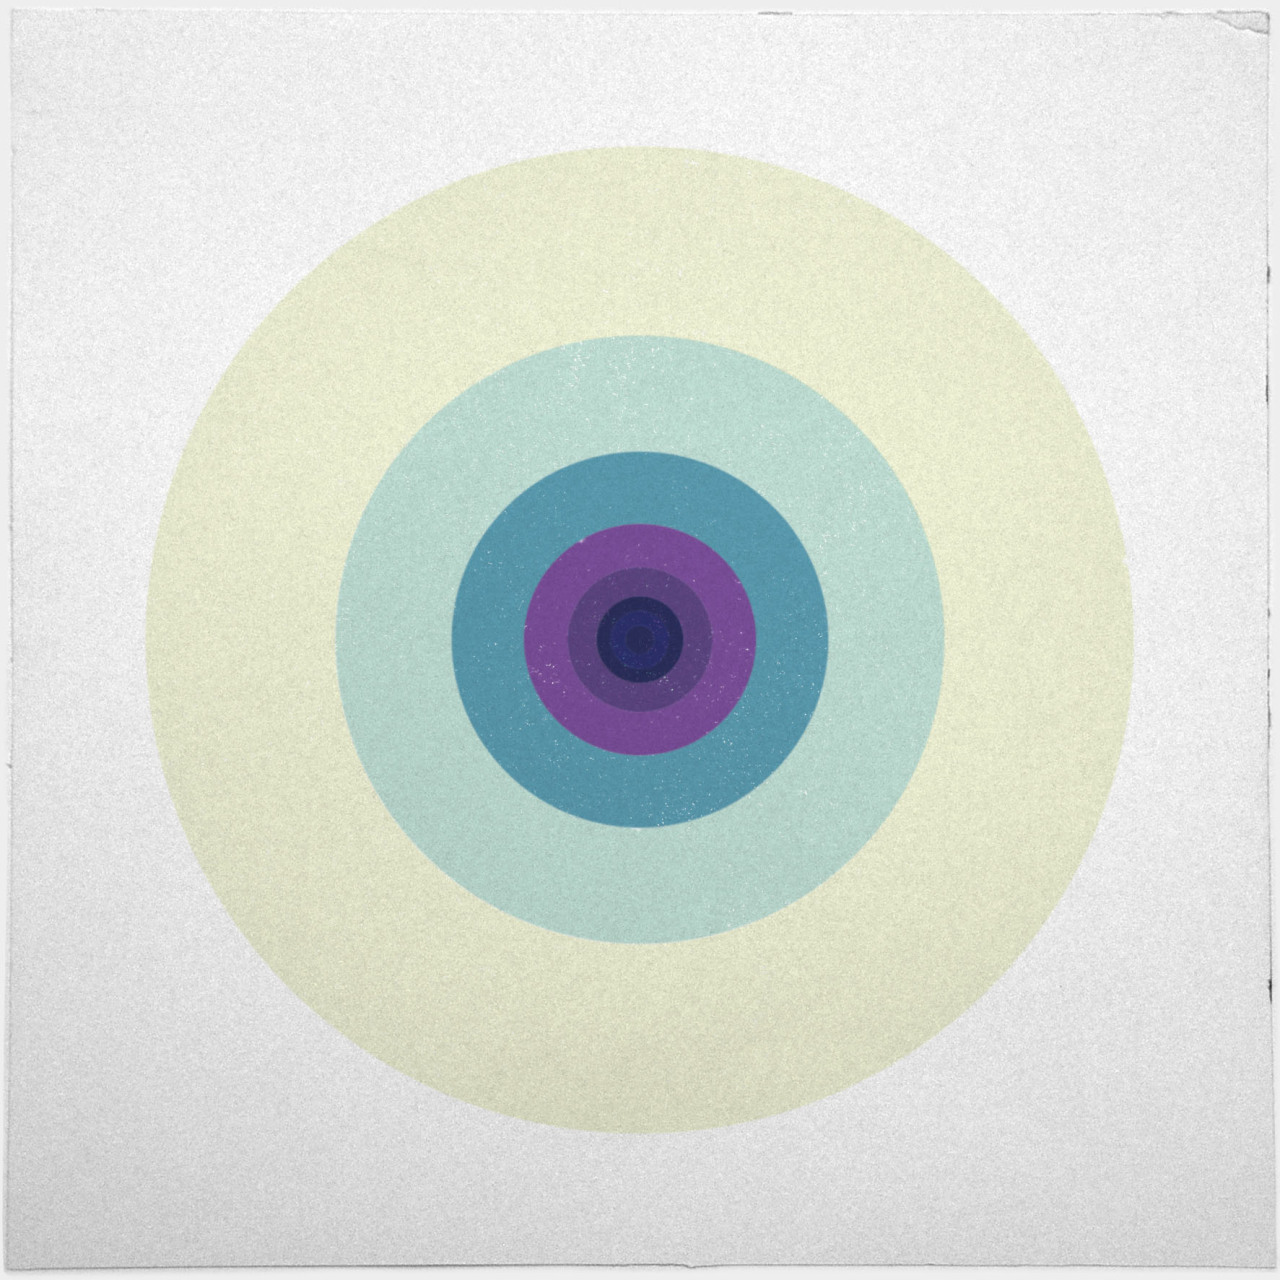 geometrydaily:  #427 Fibonacci's left eye – A new minimal geometric composition each day